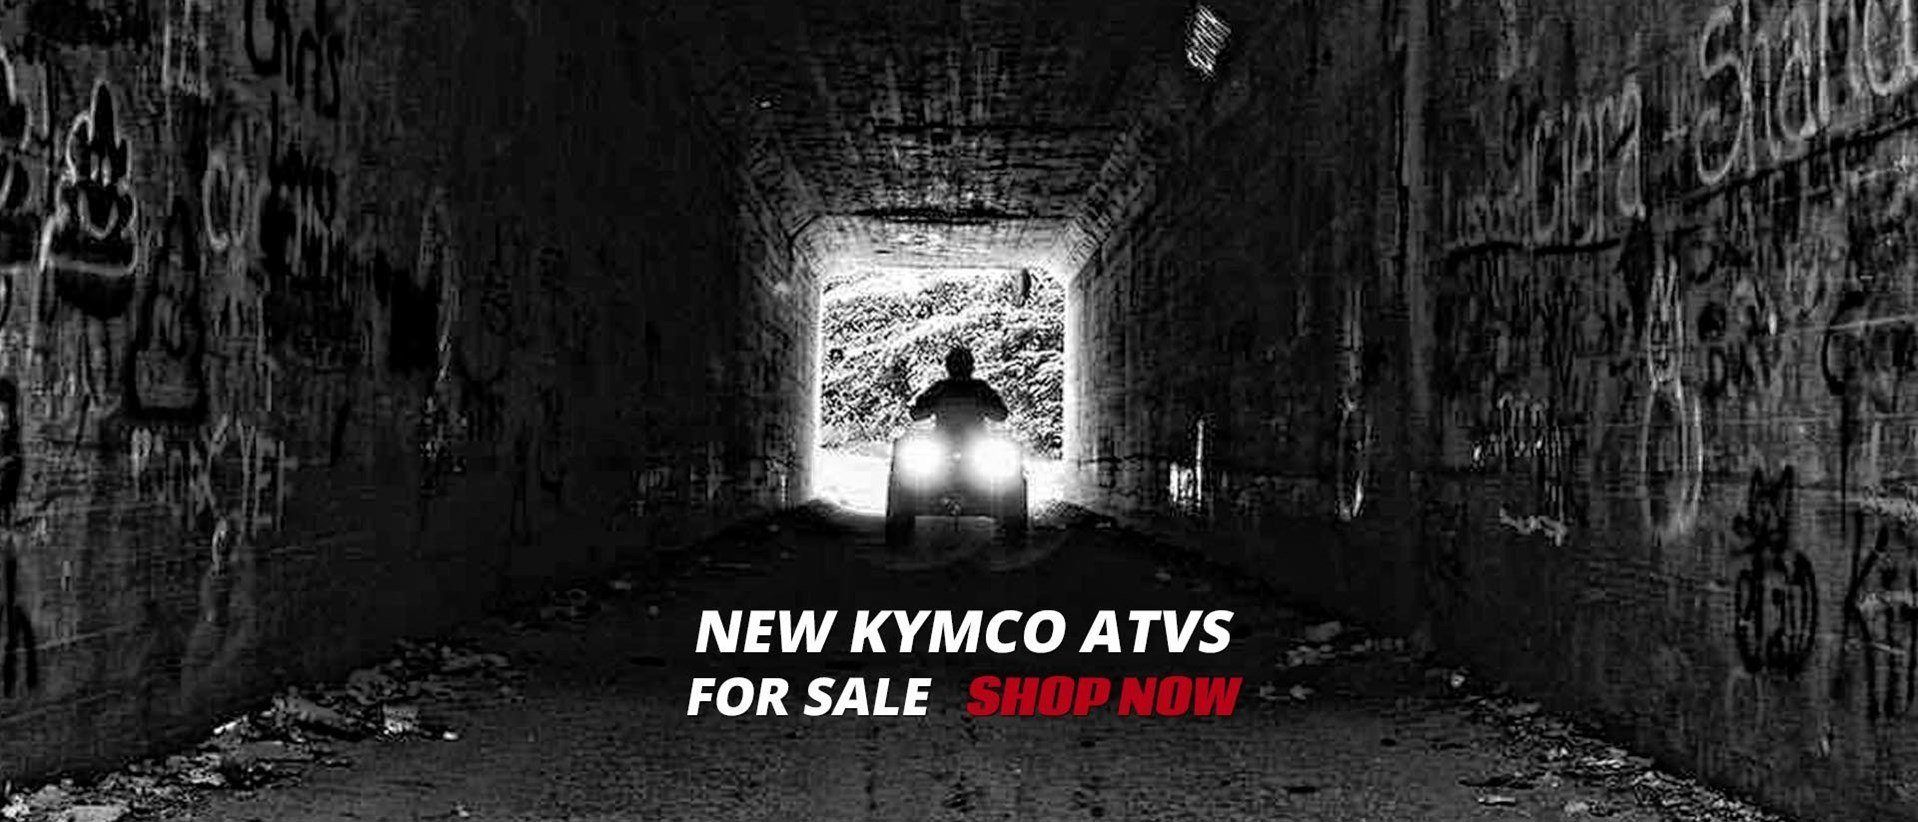 New Kymco ATVs For Sale at New Haven PowerSports in CT